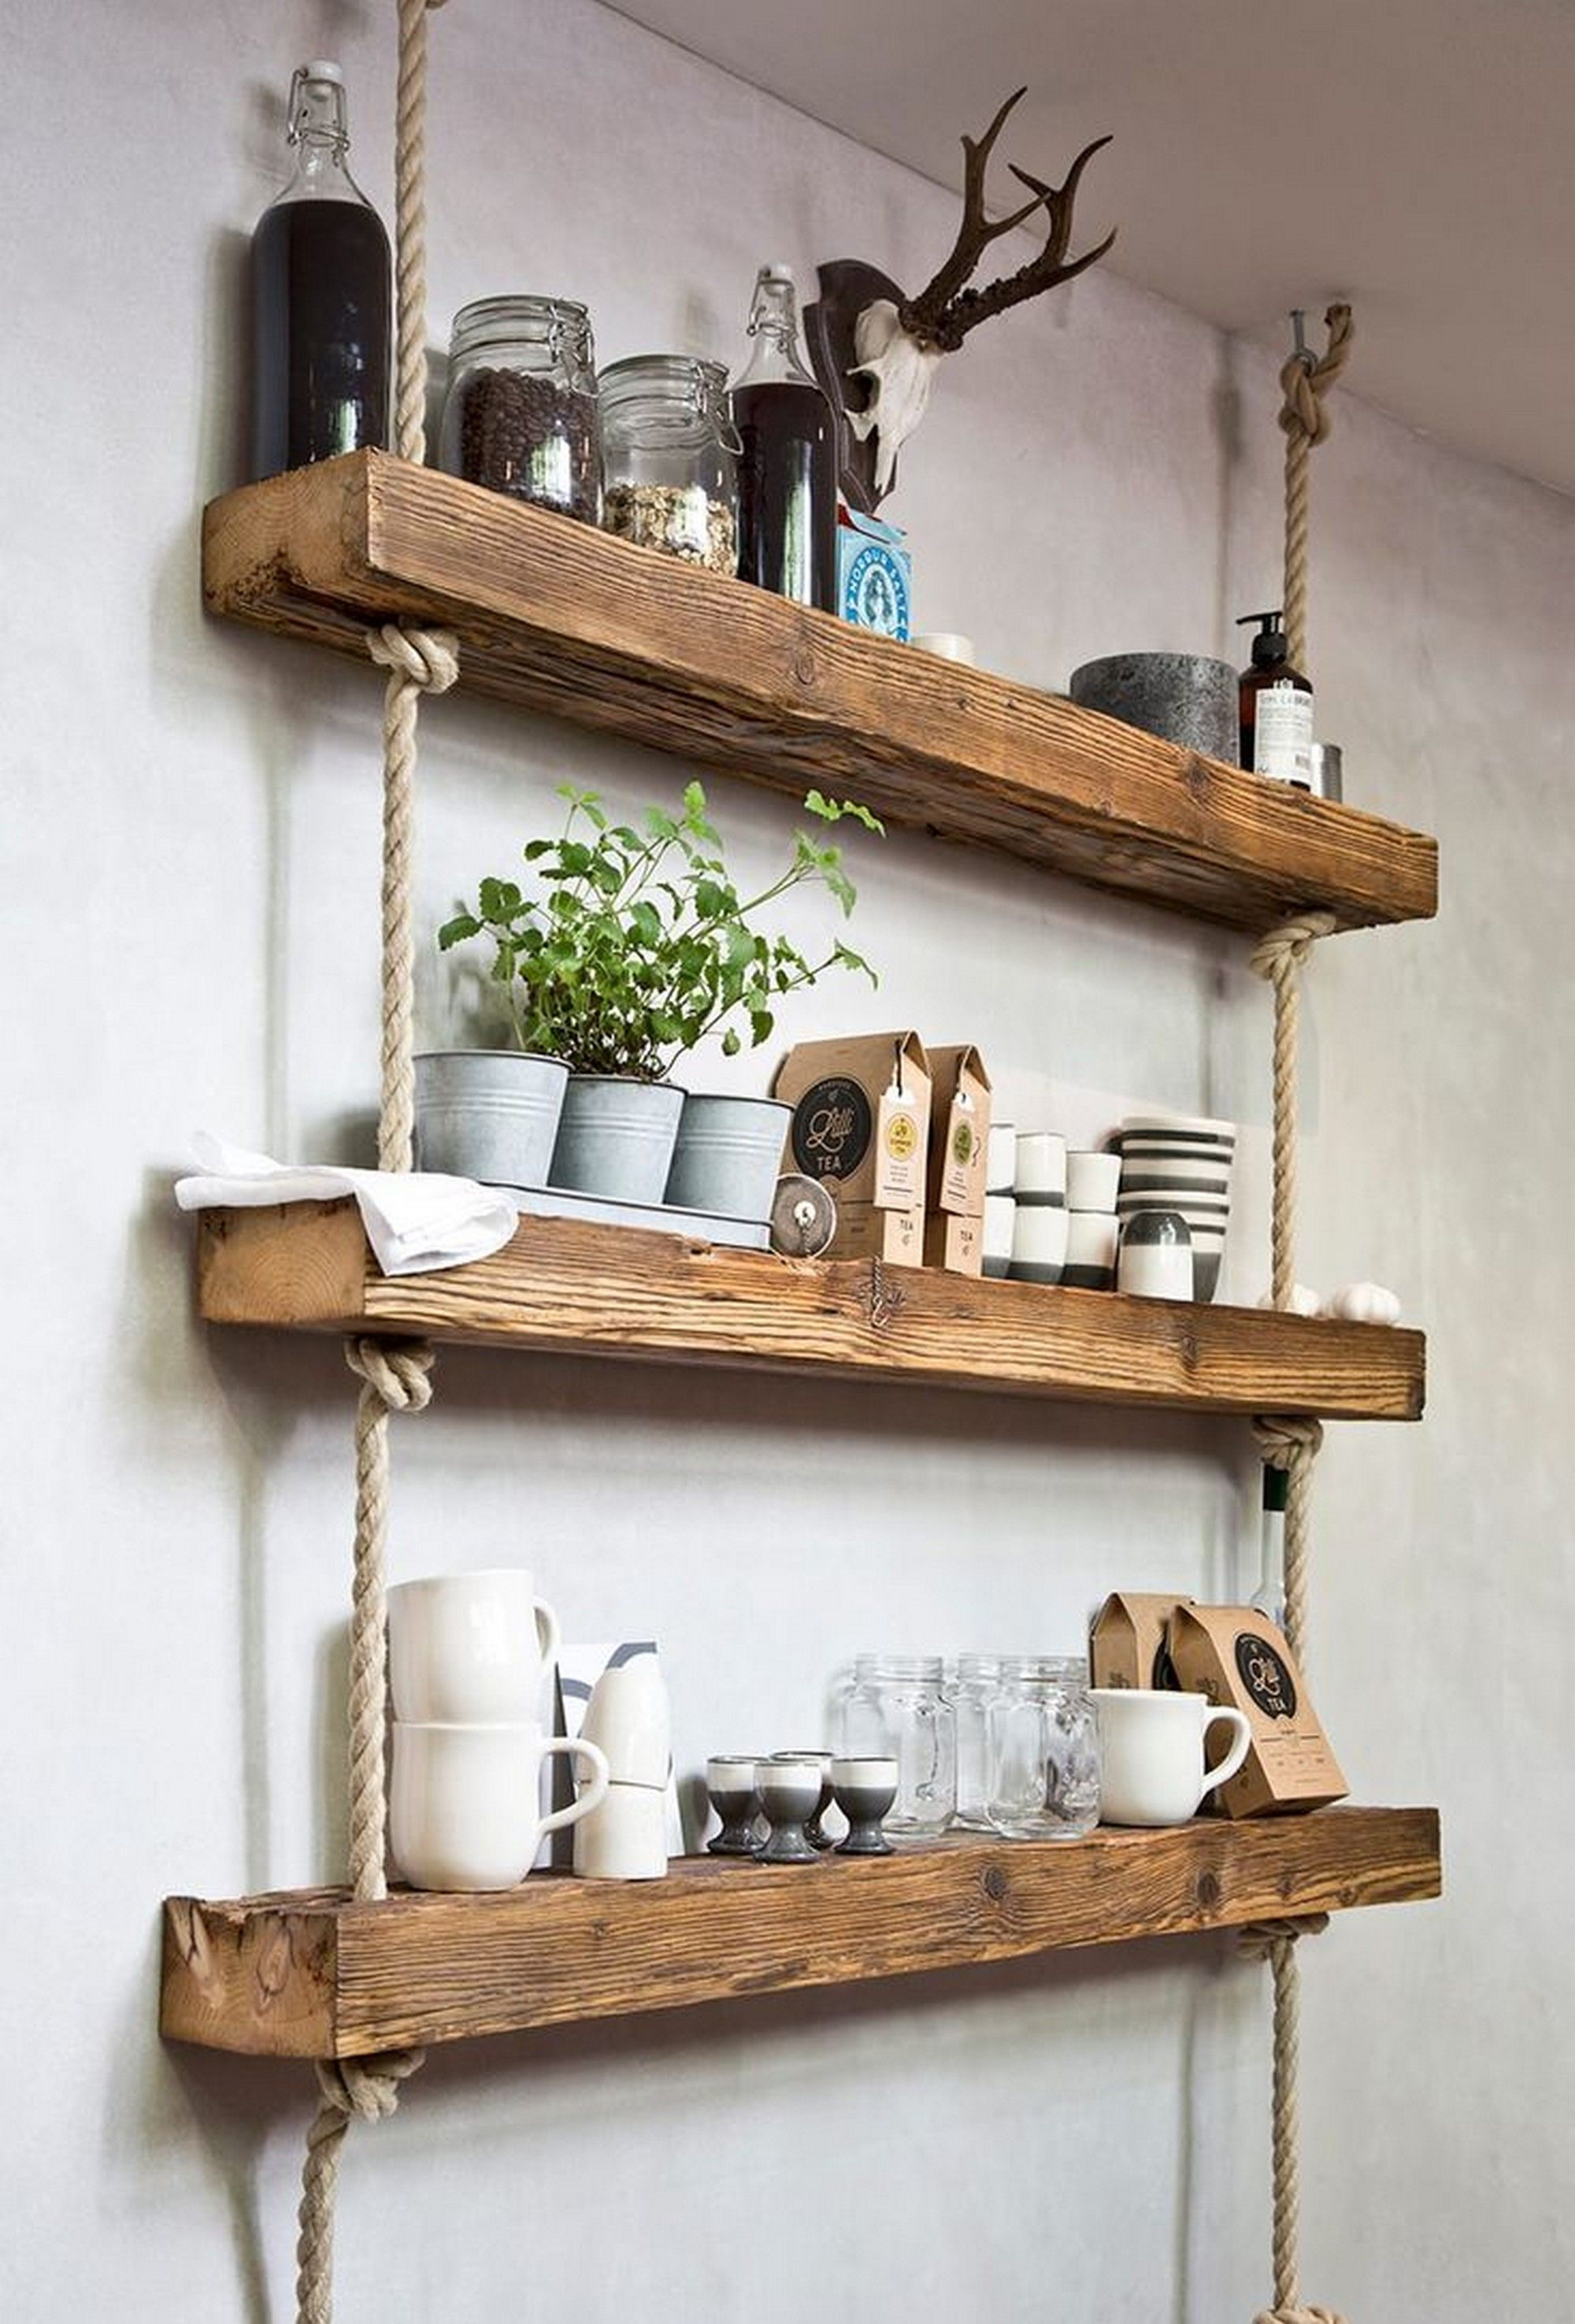 Easy and stylish diy wooden wall shelves ideas woodworkingideas